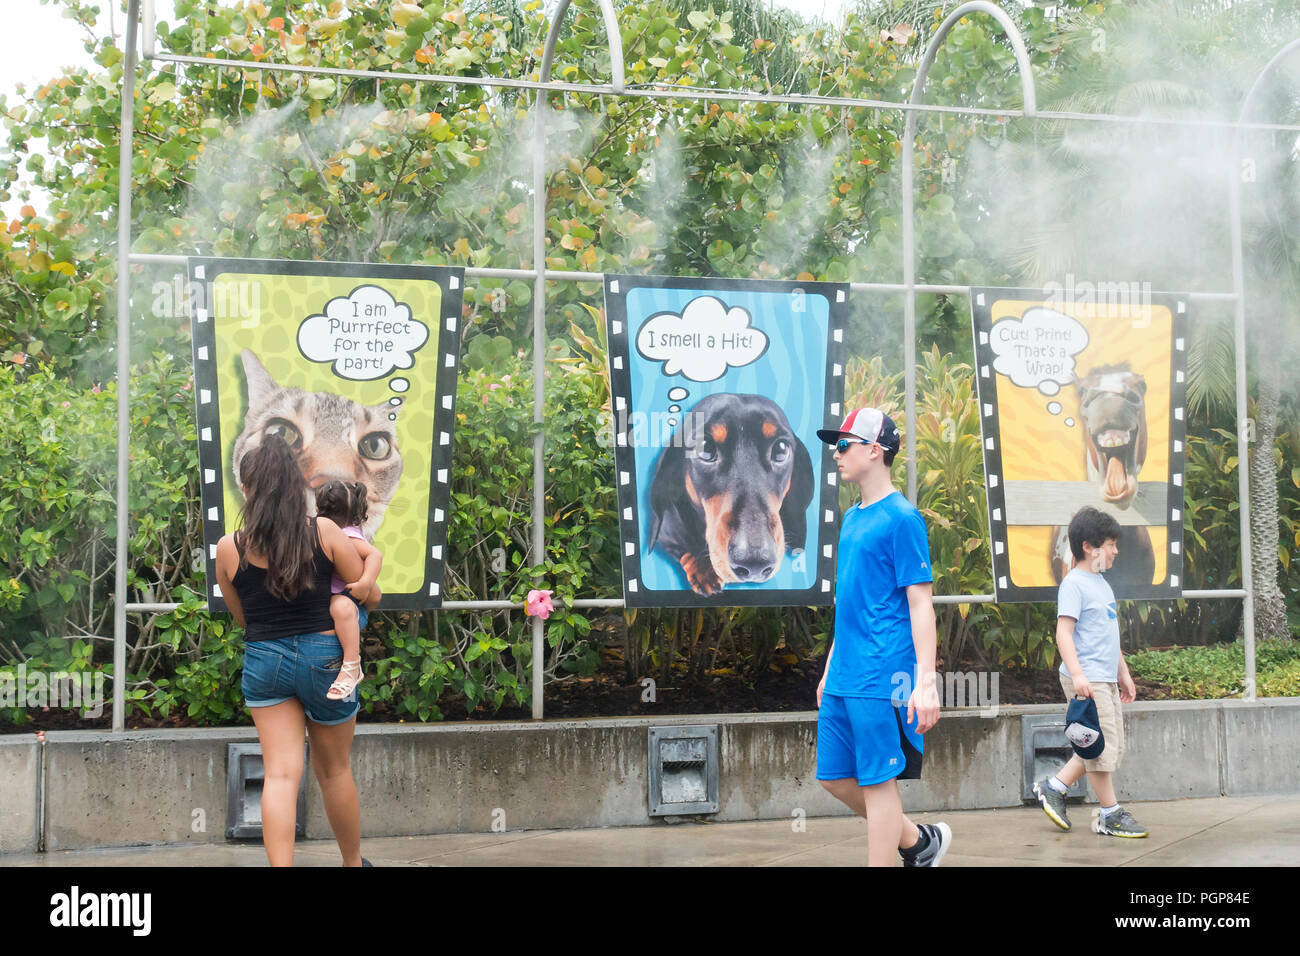 People walking under misting system (mist cooling system) at a theme park - USA - Stock Image